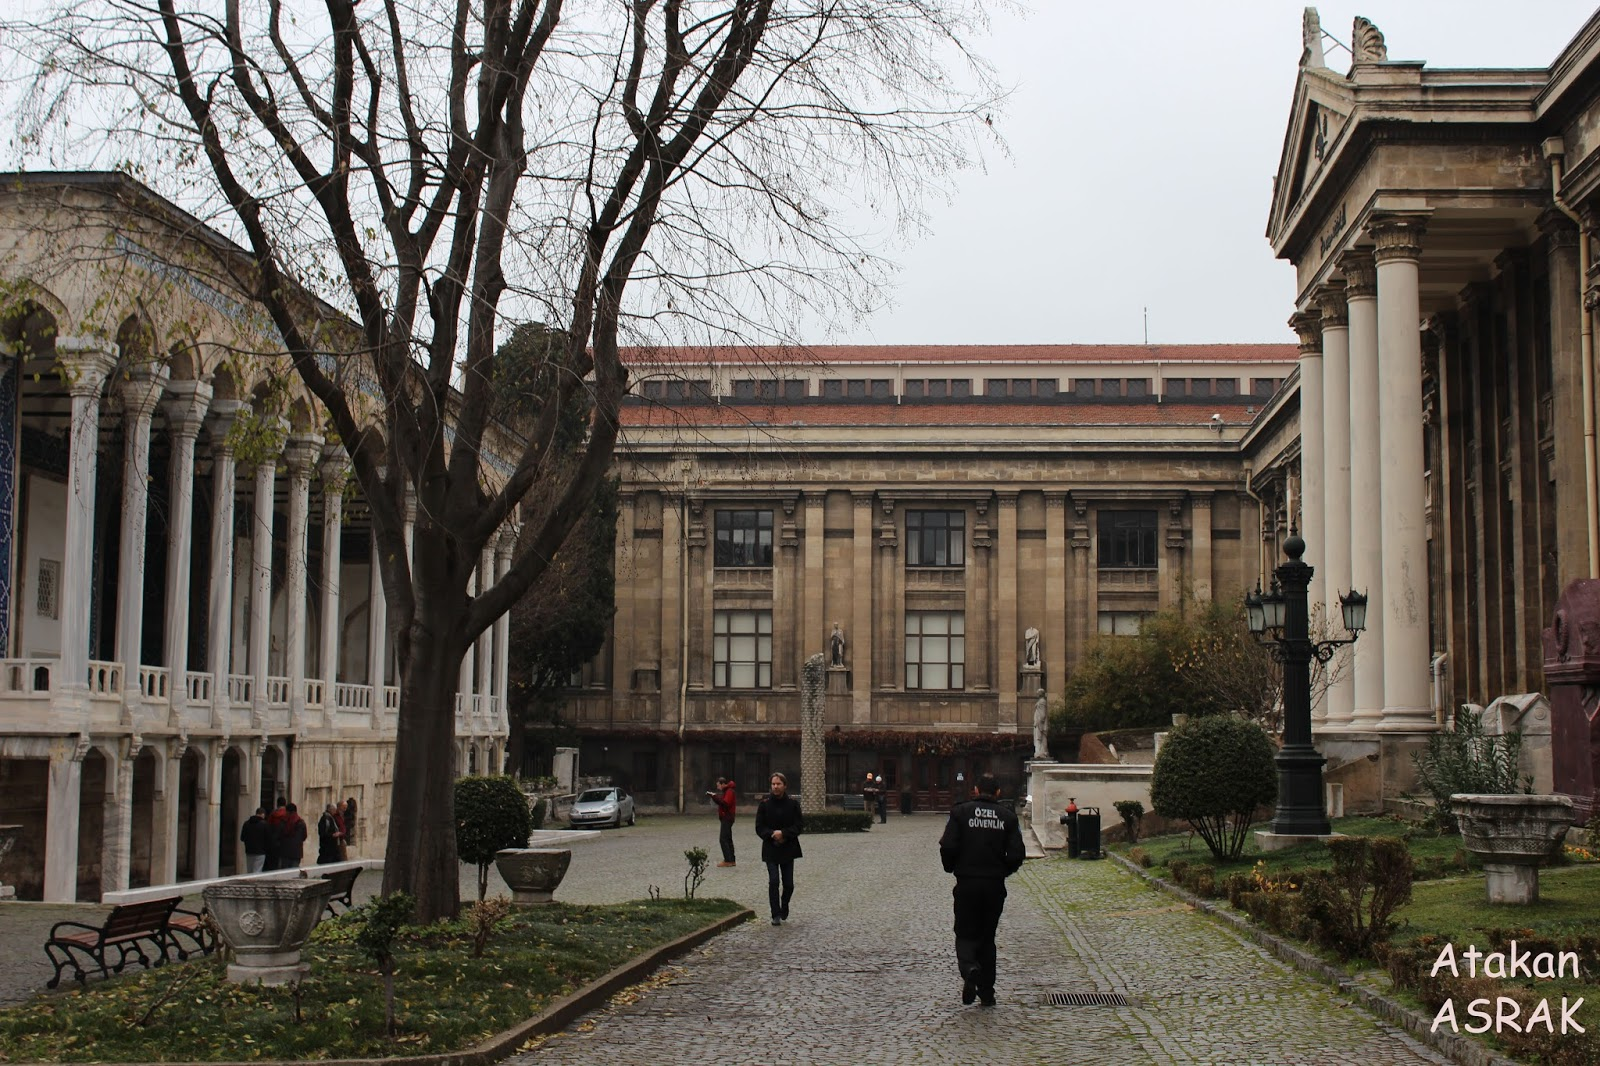 Atakan ASRAK: The Istanbul Archaeological Museums ...